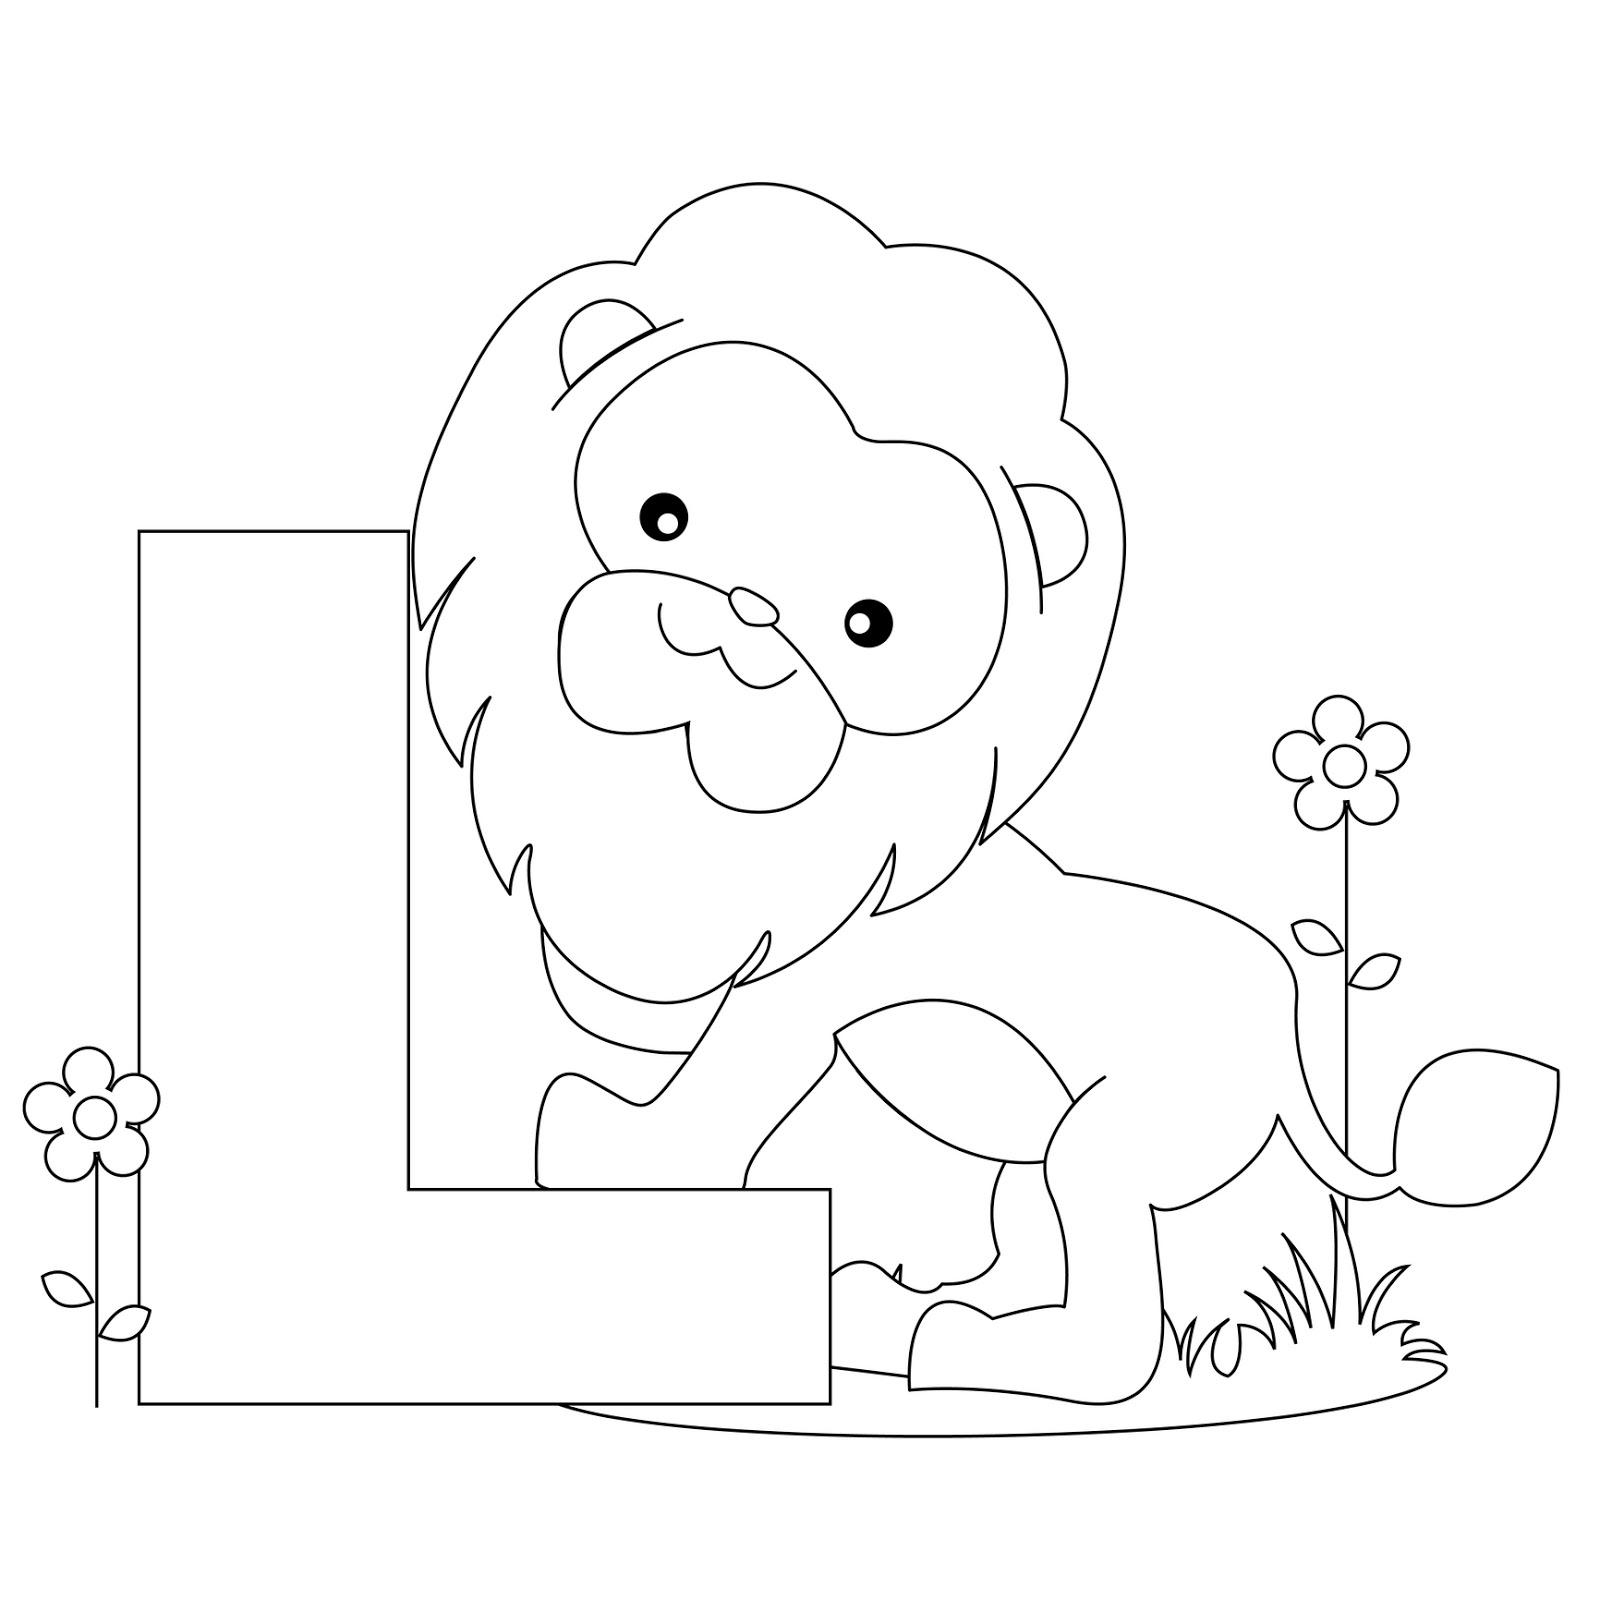 Animal Alphabet Coloring Pages Printable : Animal alphabet letter l coloring child